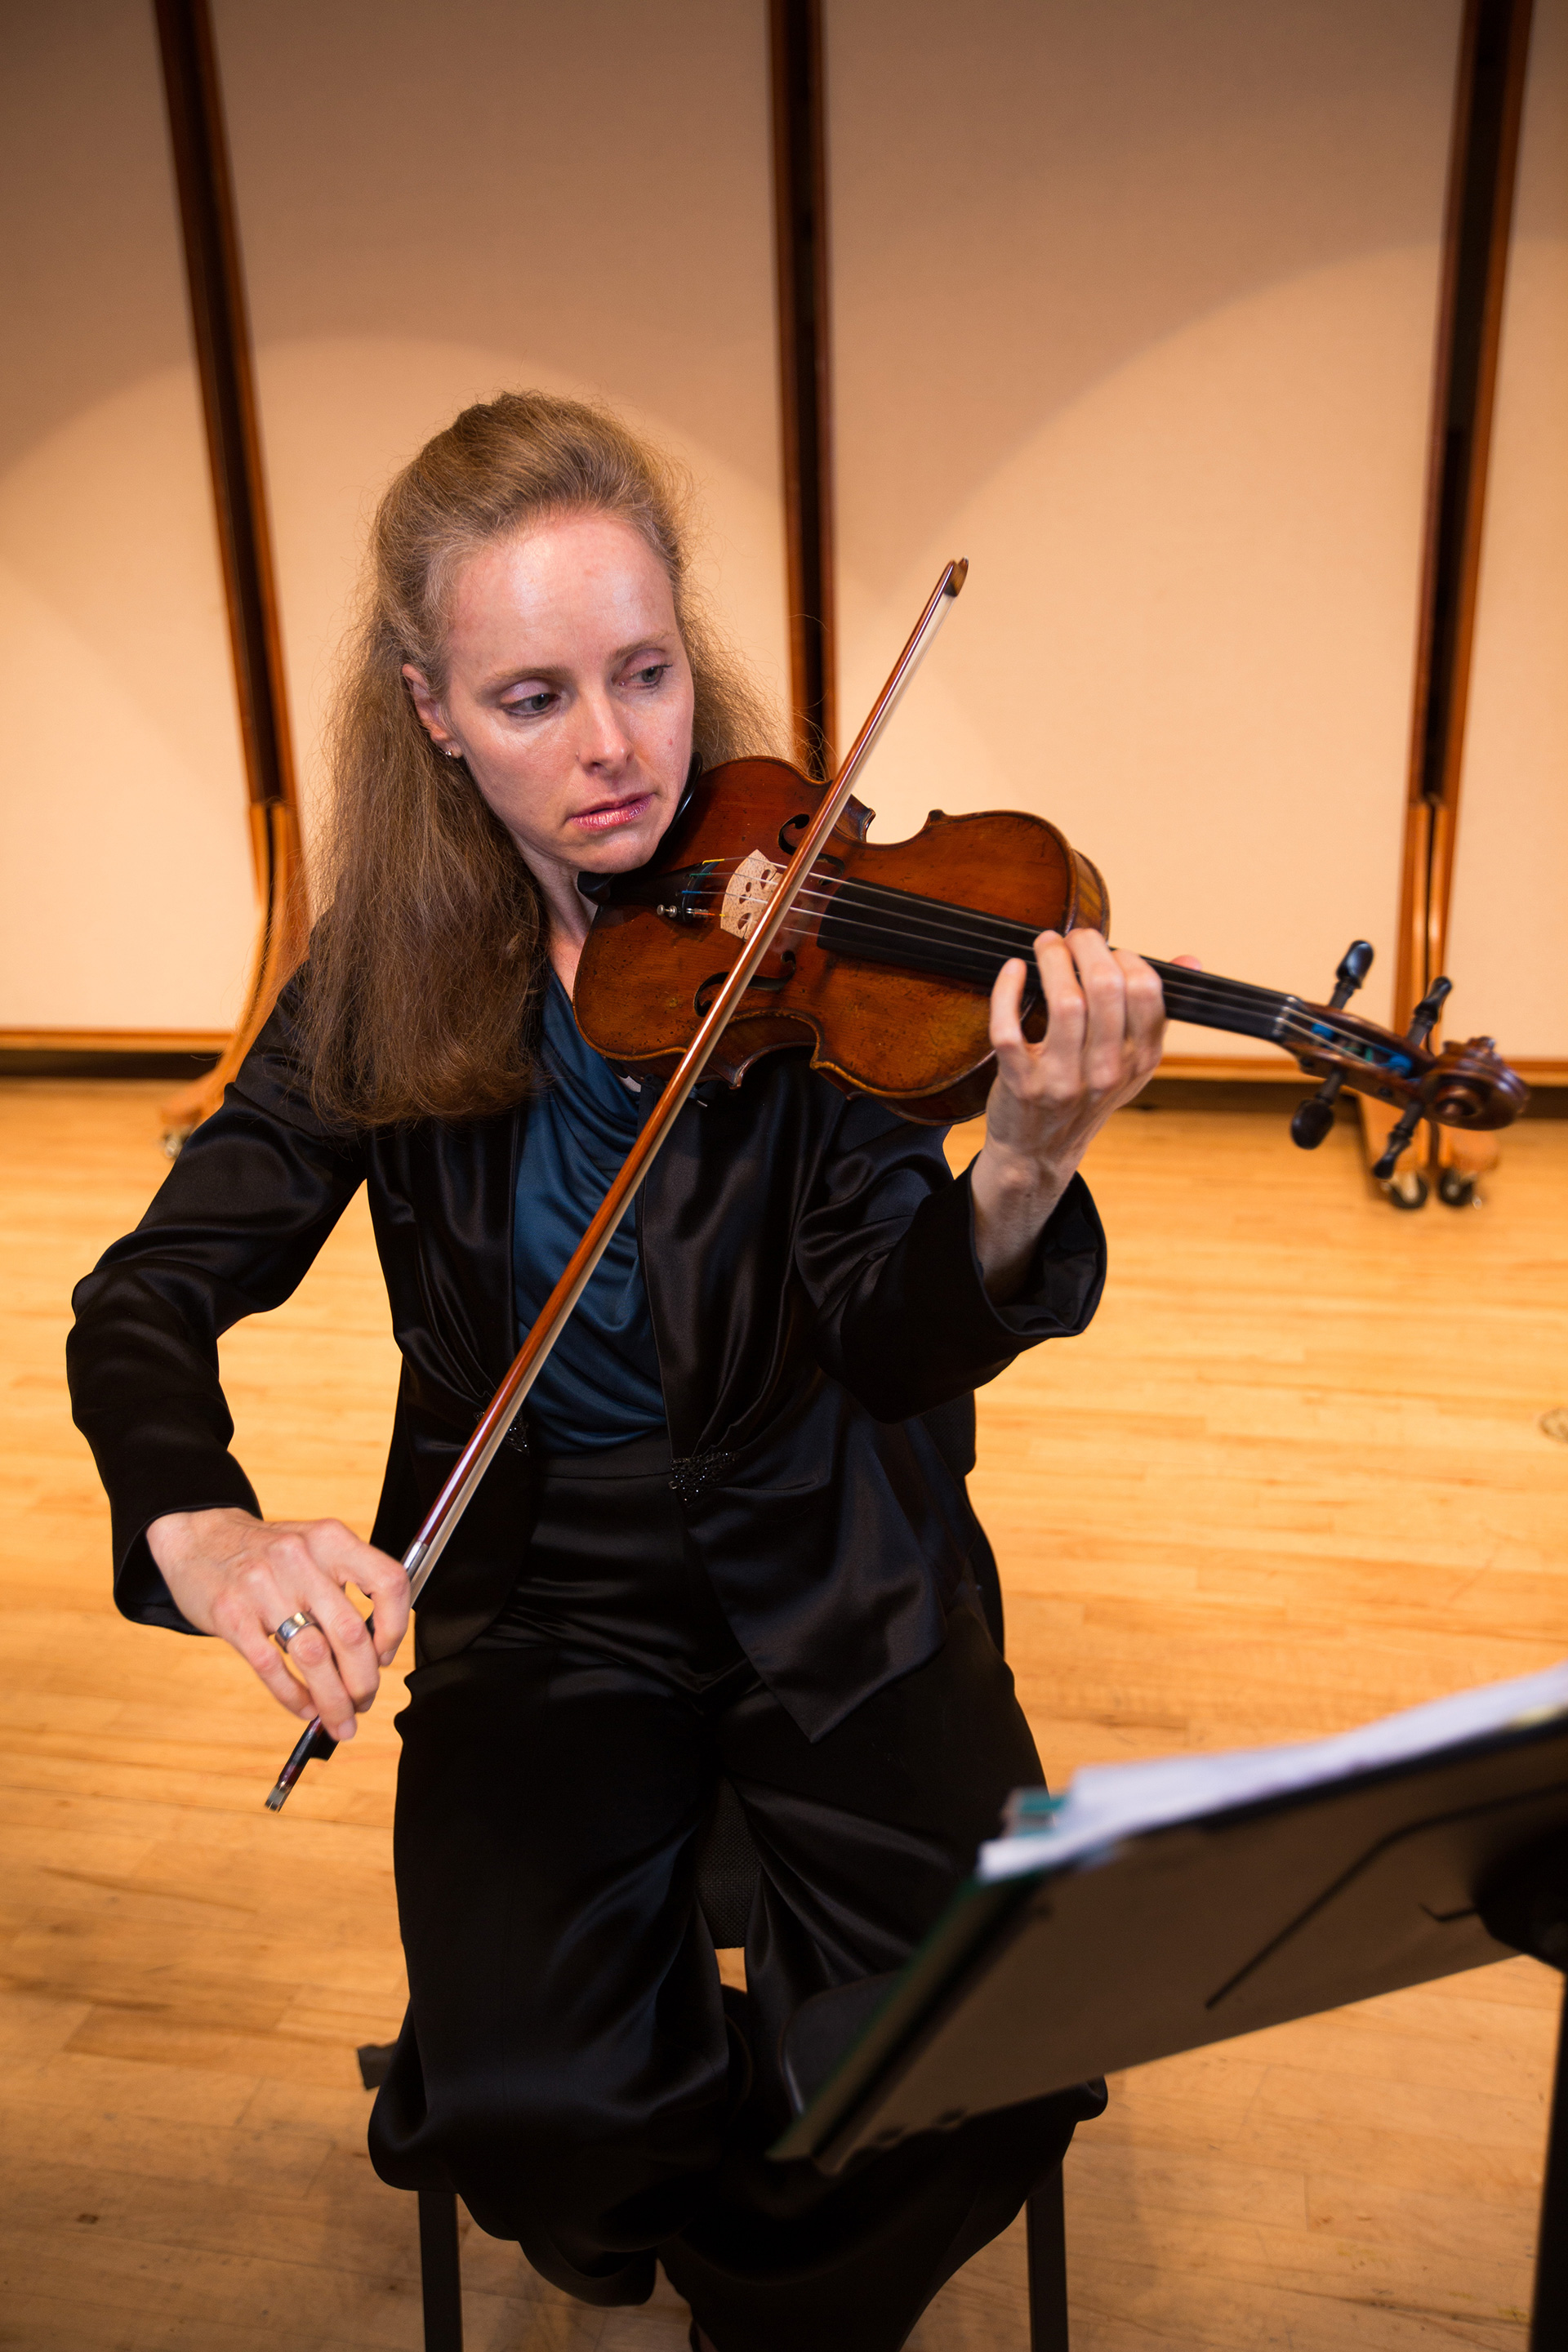 Littley with the Amram violin